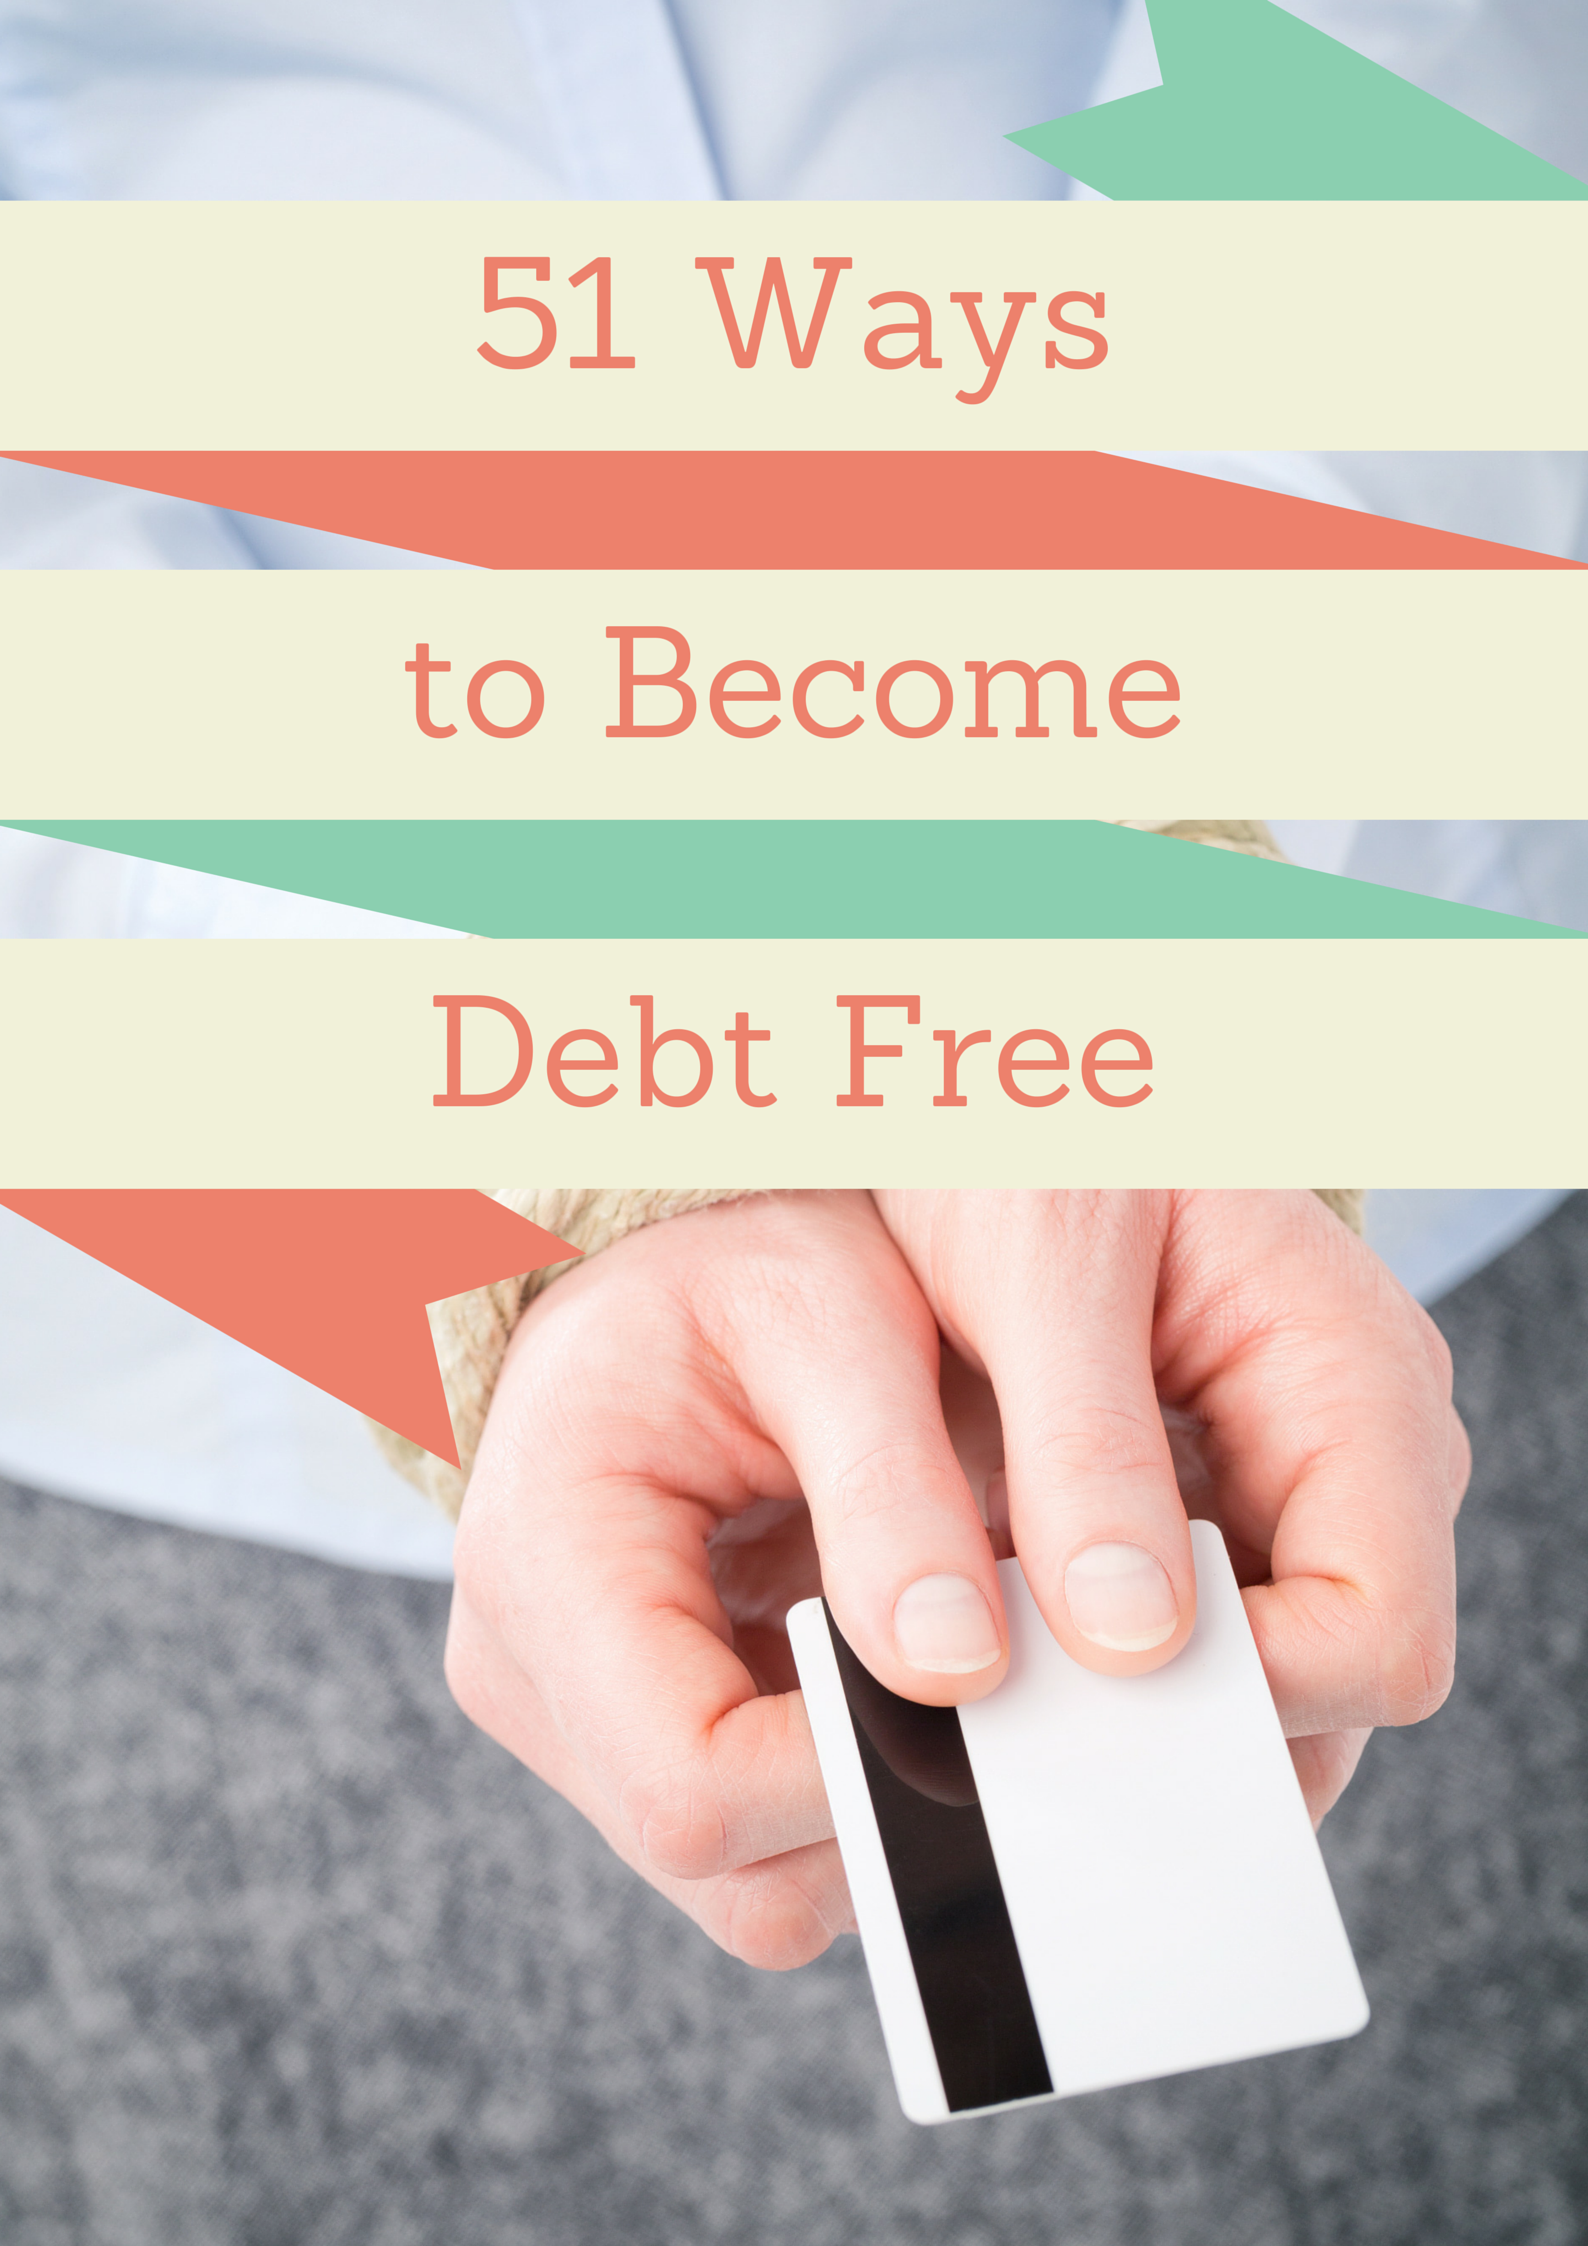 51 Ways to become debt free